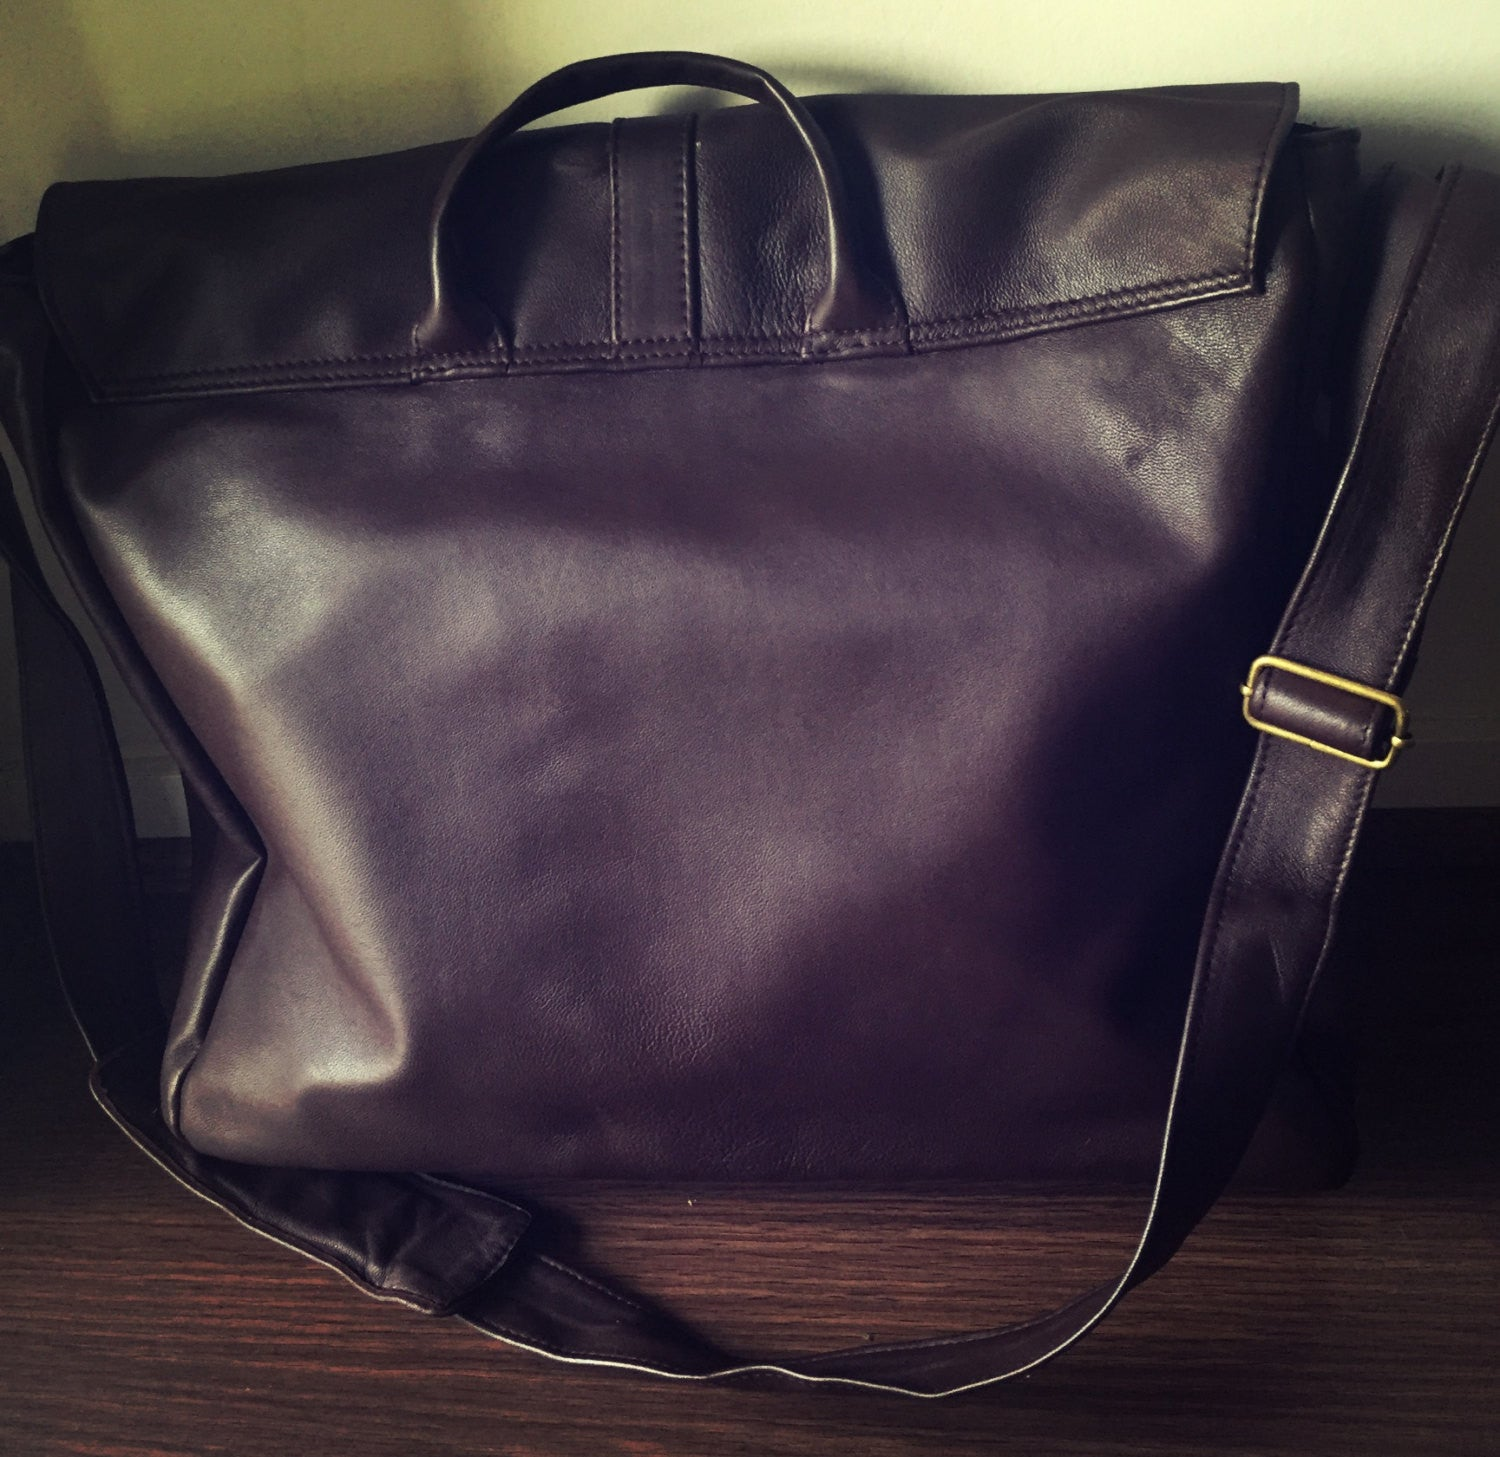 The Folio - Computer, laptop leather satchel work bag